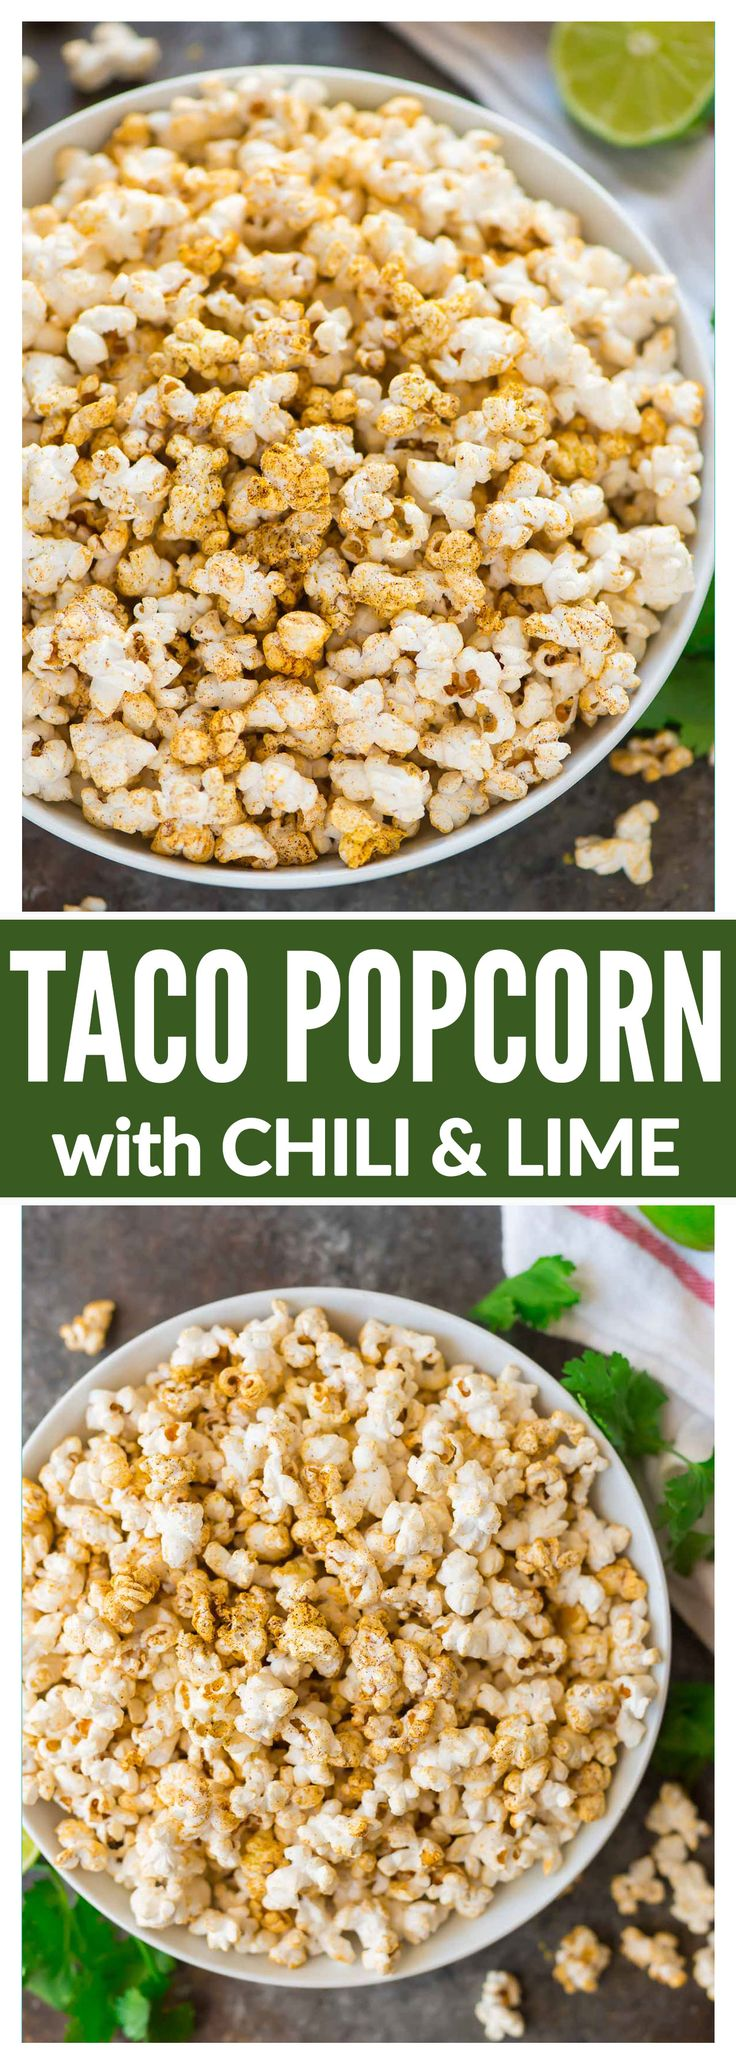 "Easy ""Cheesy"" Taco Popcorn. Chili powder, fresh lime zest, and nutritional yeast make a delicious, healthy, dairy free party appetizer or office snack. Perfect for movie nights! #popcorn #tacopopcorn #dairyfree #healthysnack #appetizer"